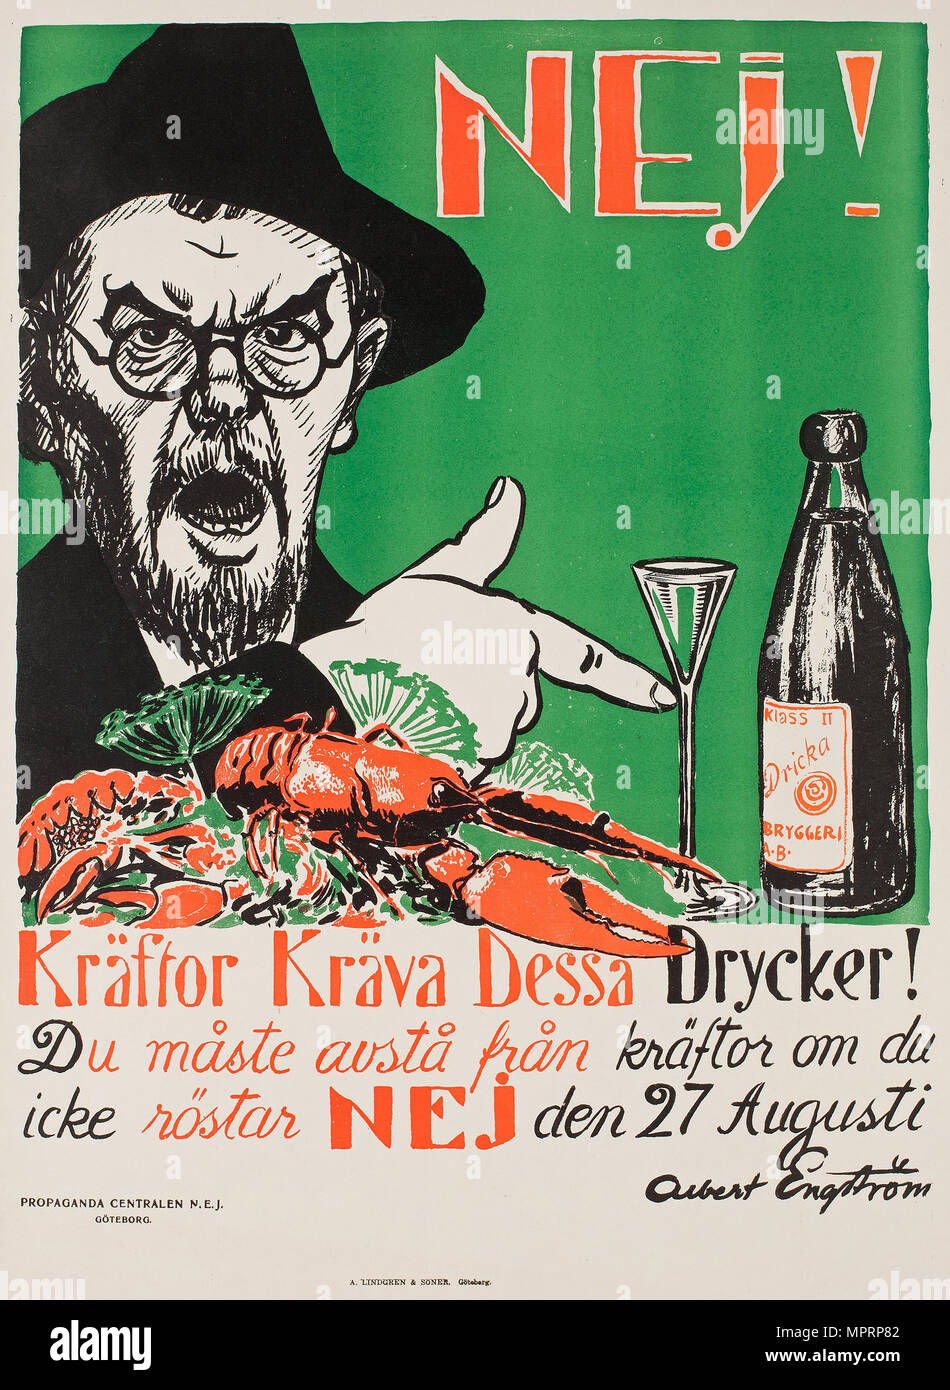 No! Crayfish require these drinks!, Swedish anti-Prohibition poster, 1922. - Stock Image